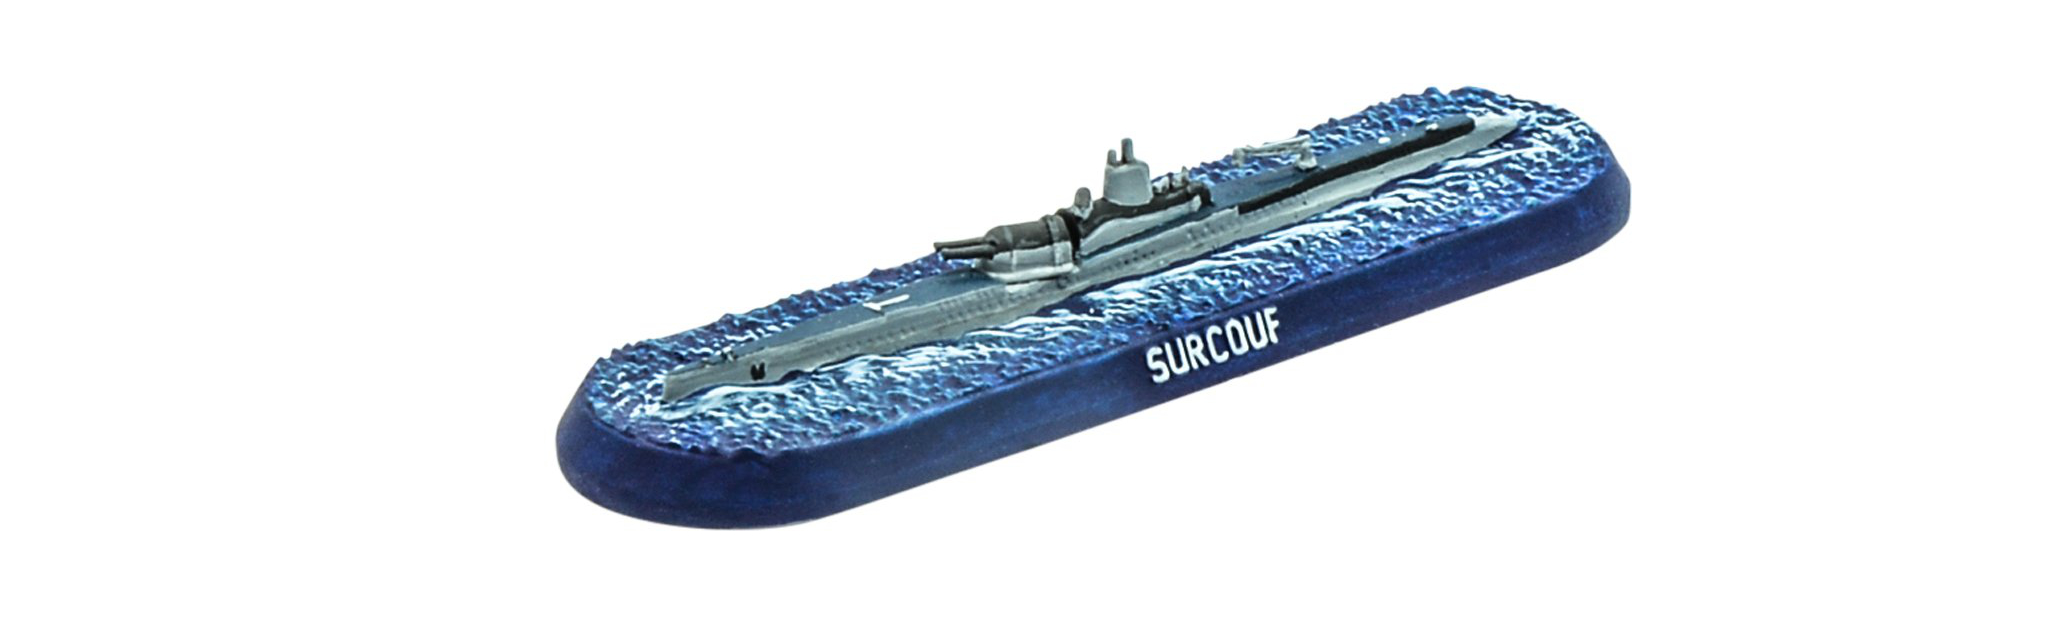 Surcouf Cruiser Submarine - Victory At Sea